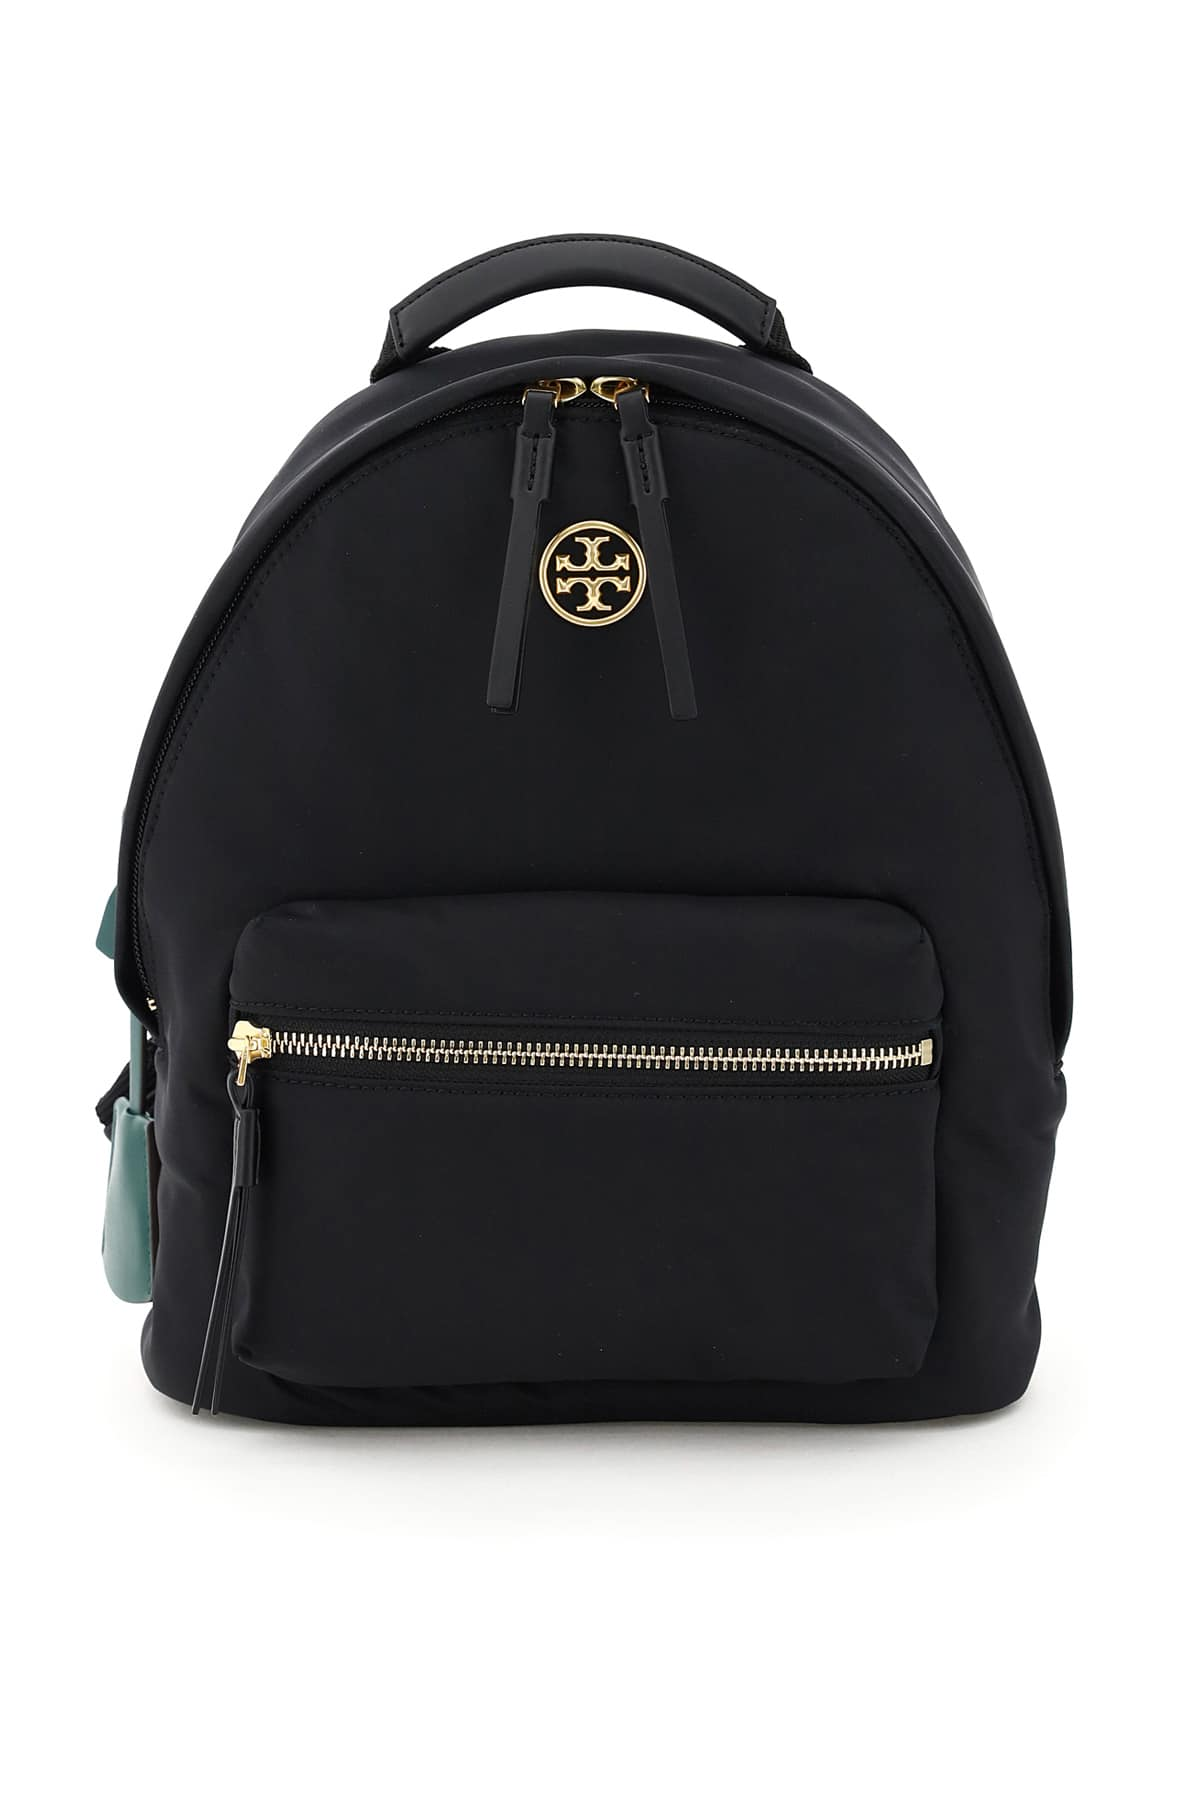 TORY BURCH SMALL PIPER BACKPACK OS Black Technical, Leather